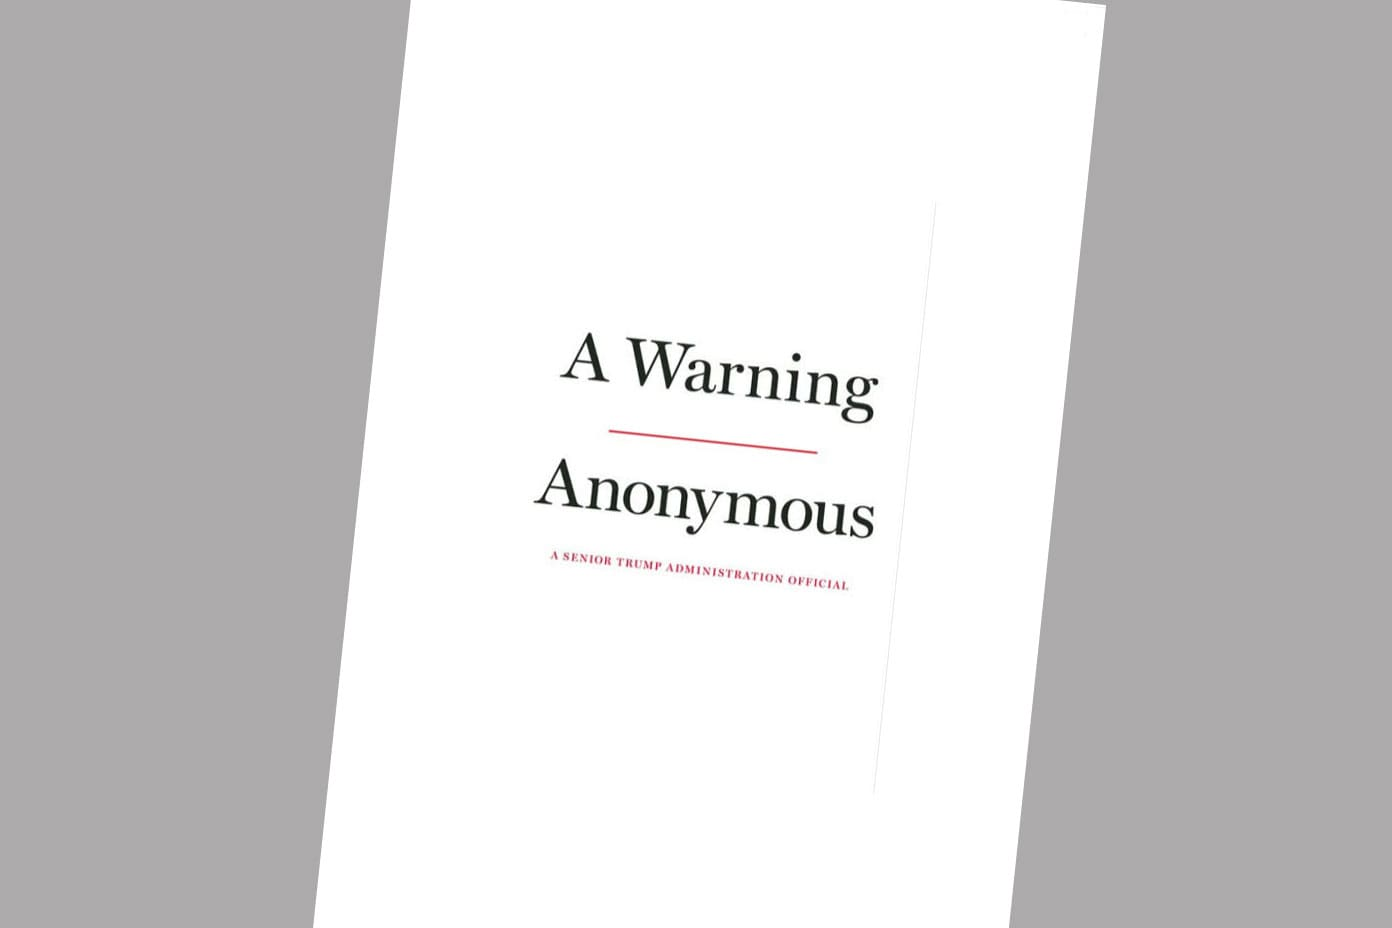 The Justice Department is asking for details about 'Anonymous,' the author of forthcoming book on Trump administration